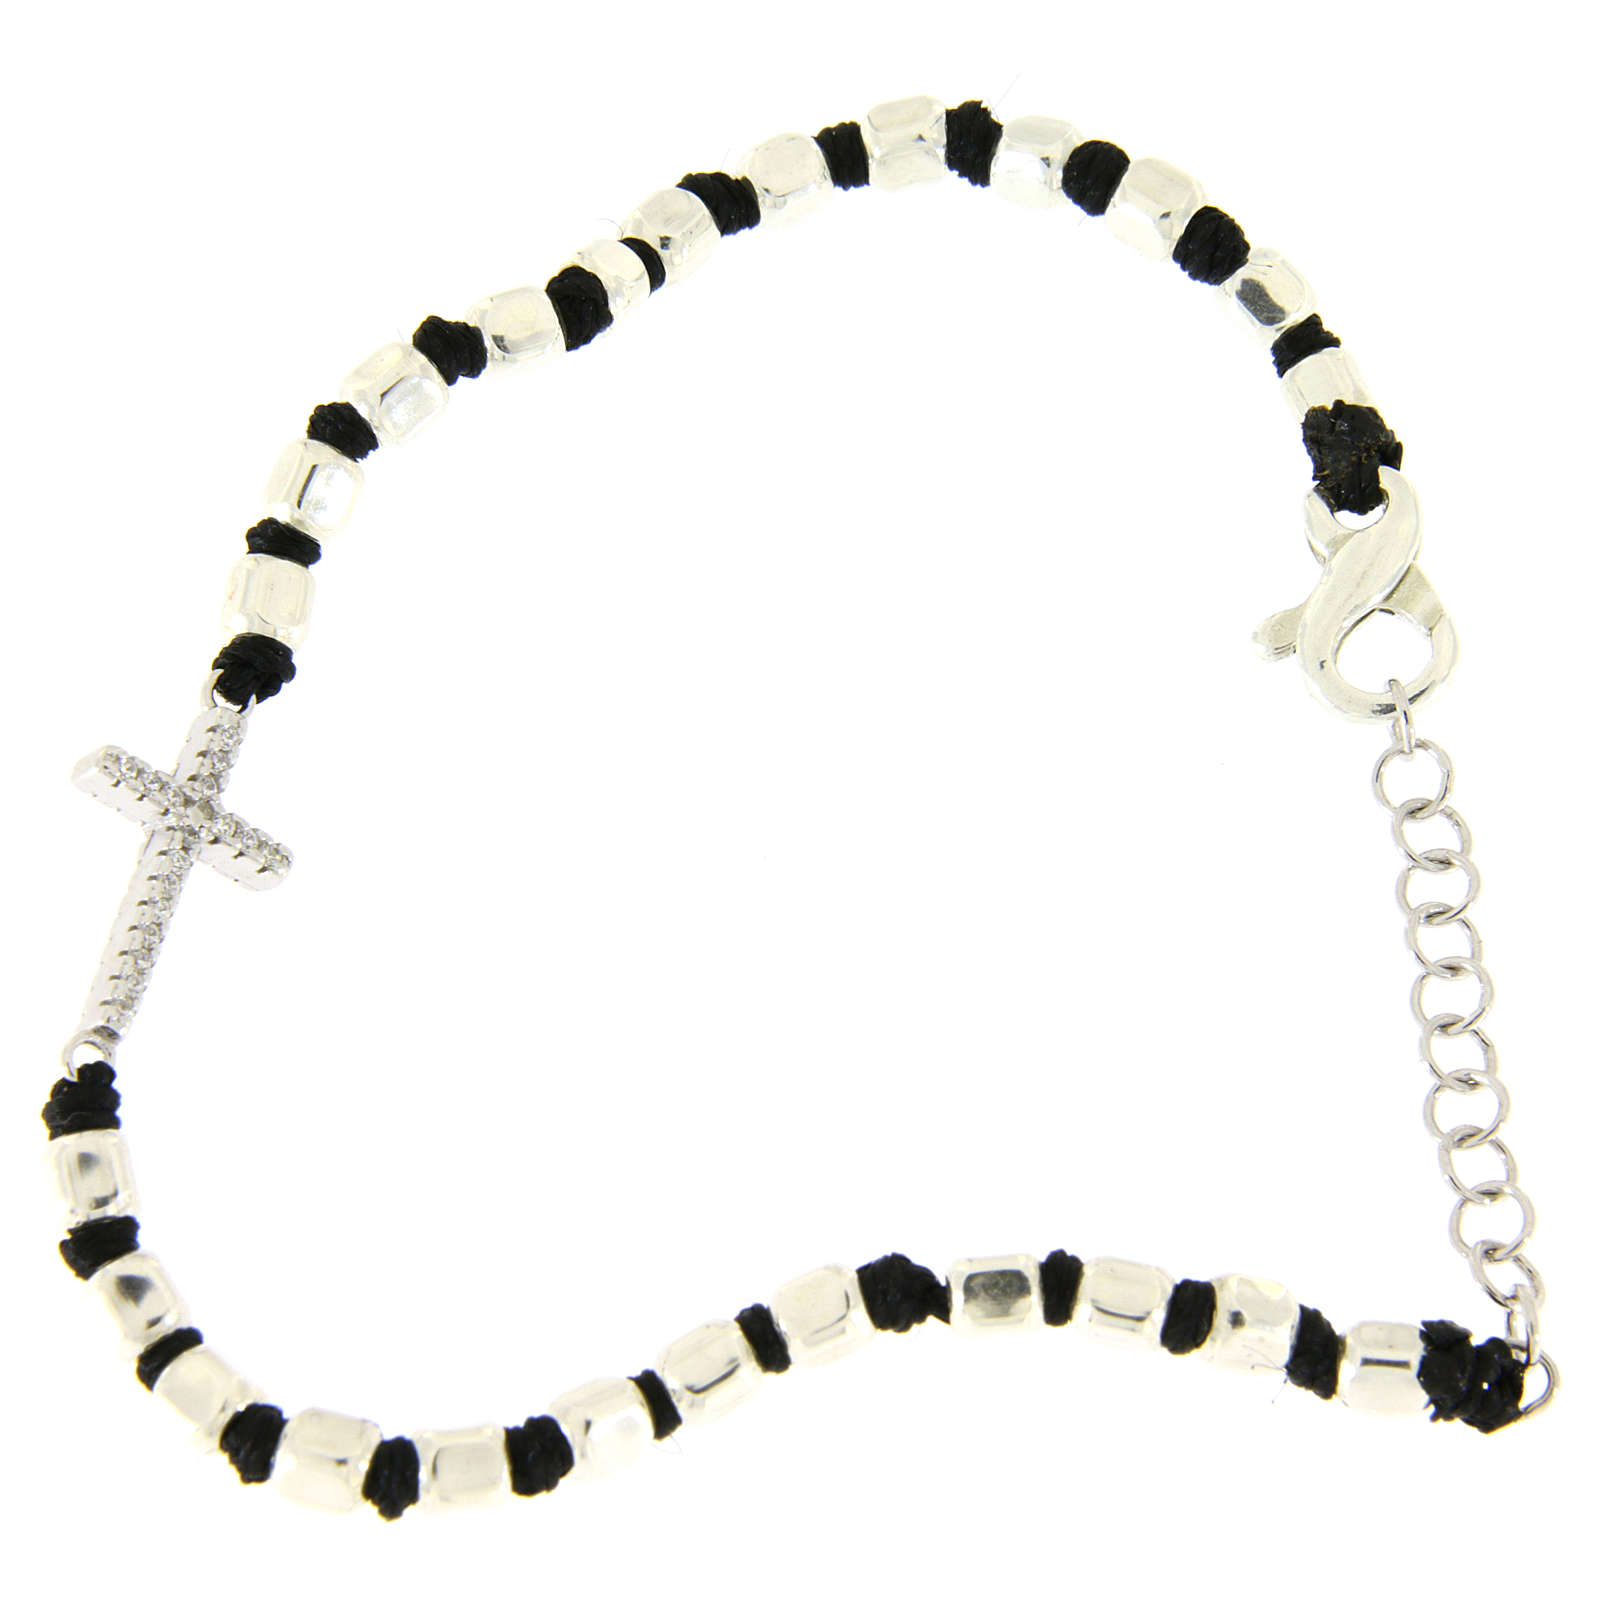 Bracelet with multifaceted silver beads sized 2 mm on a black cotton cord and a white zirconate cross 4